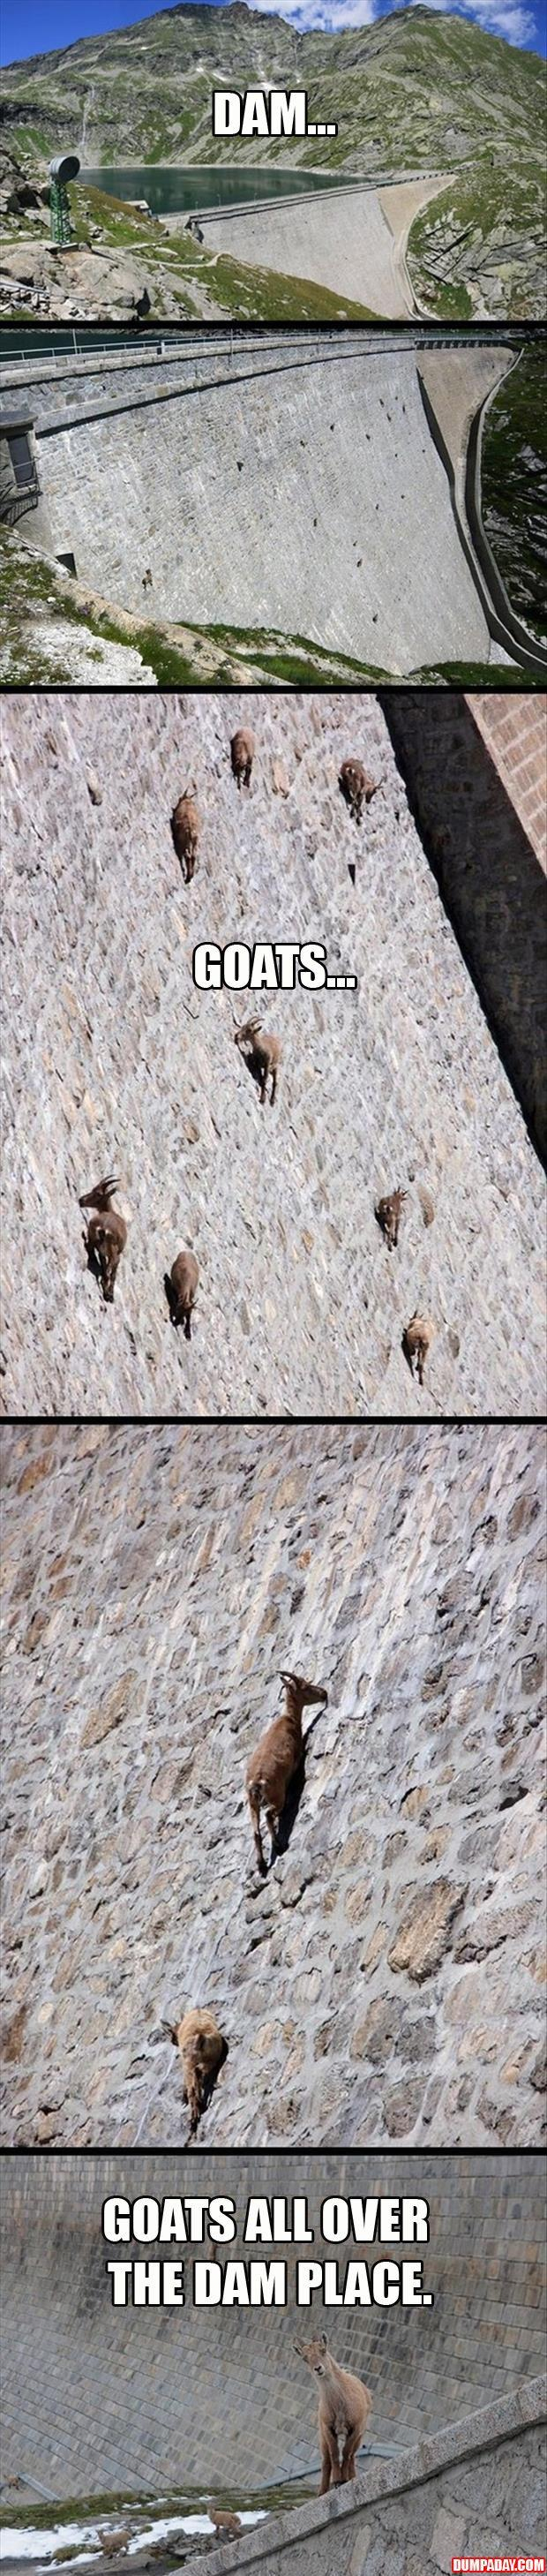 goats all over the place